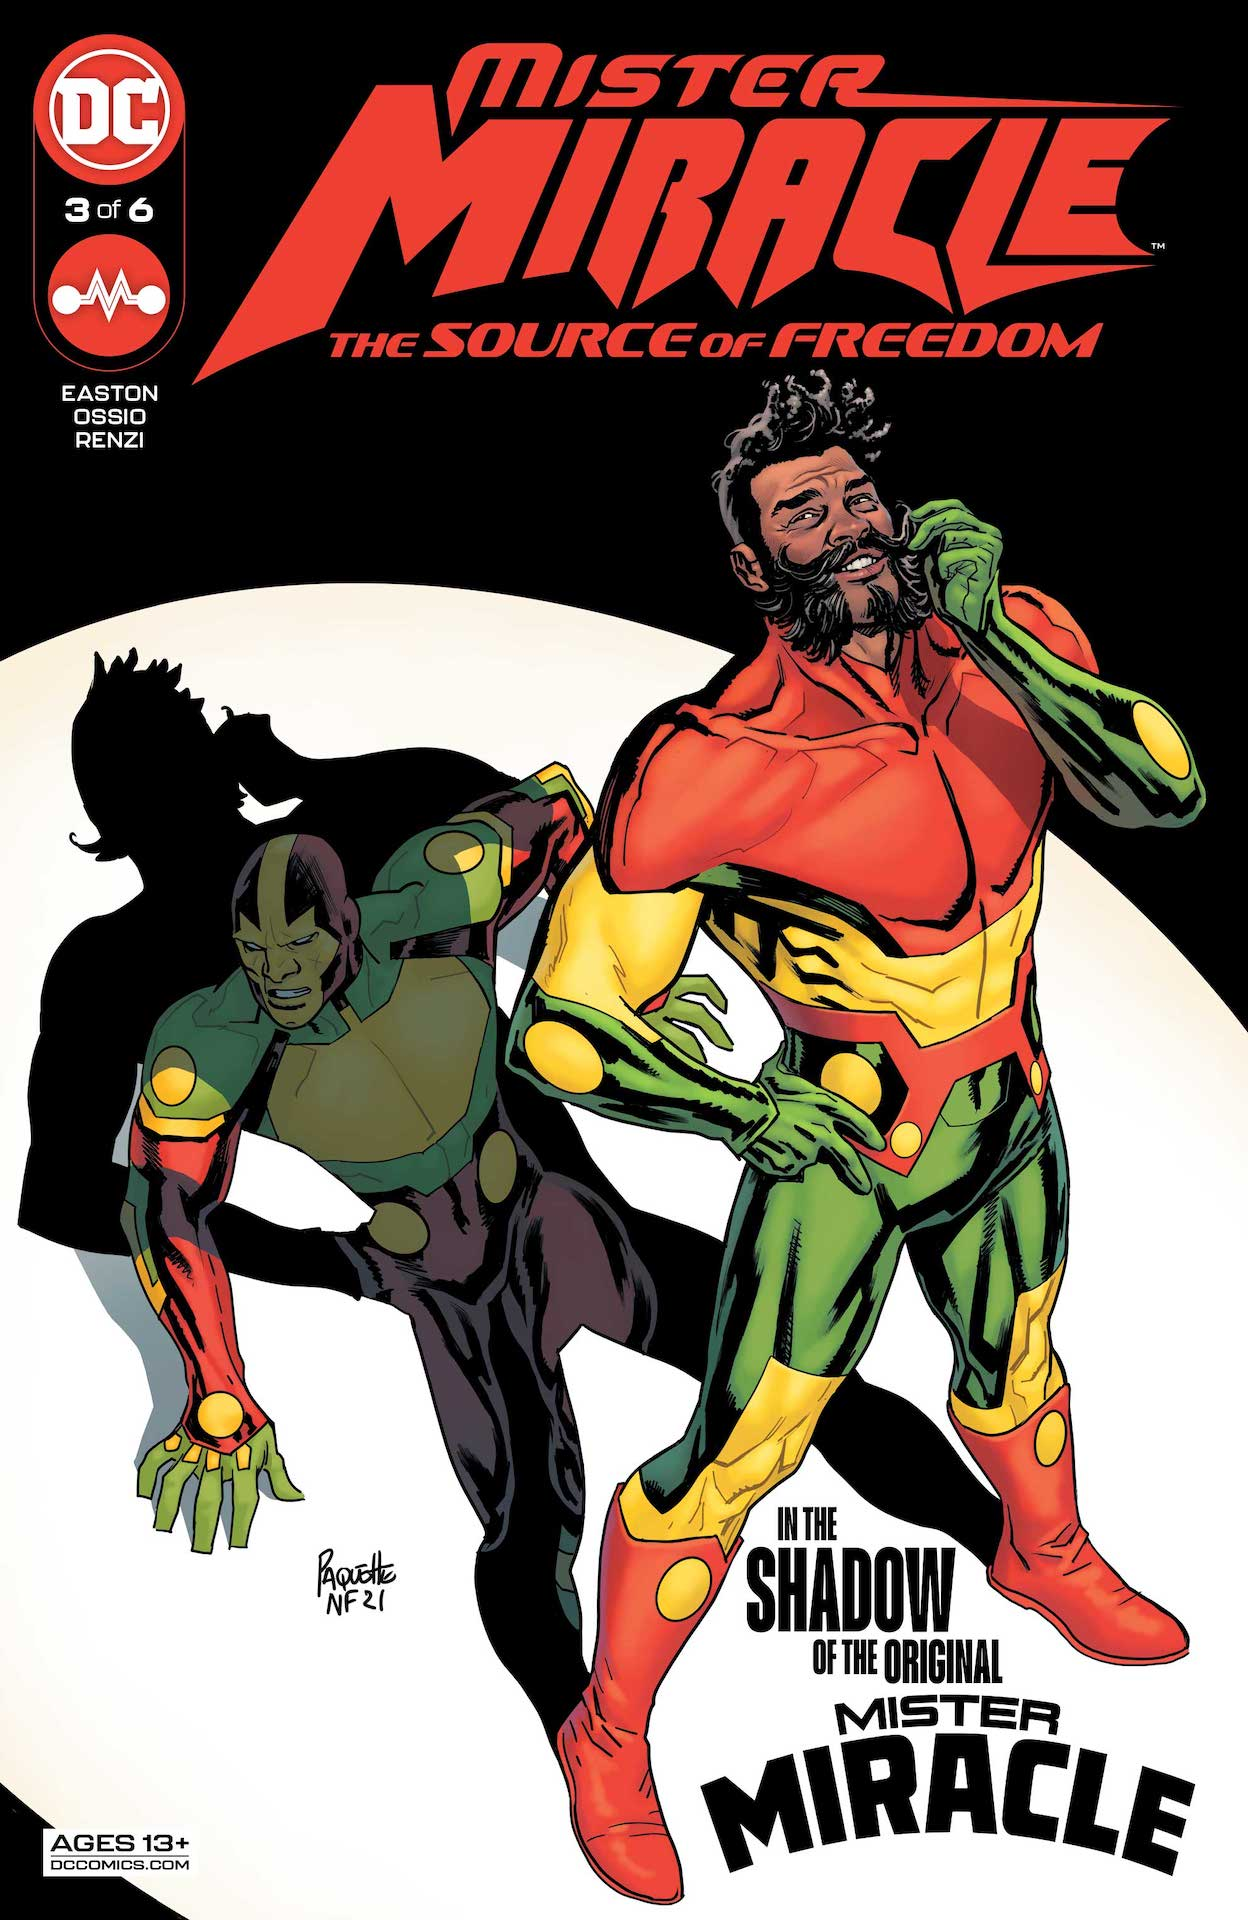 Mister-Miracle-The-Source-of-Freedom-3-1